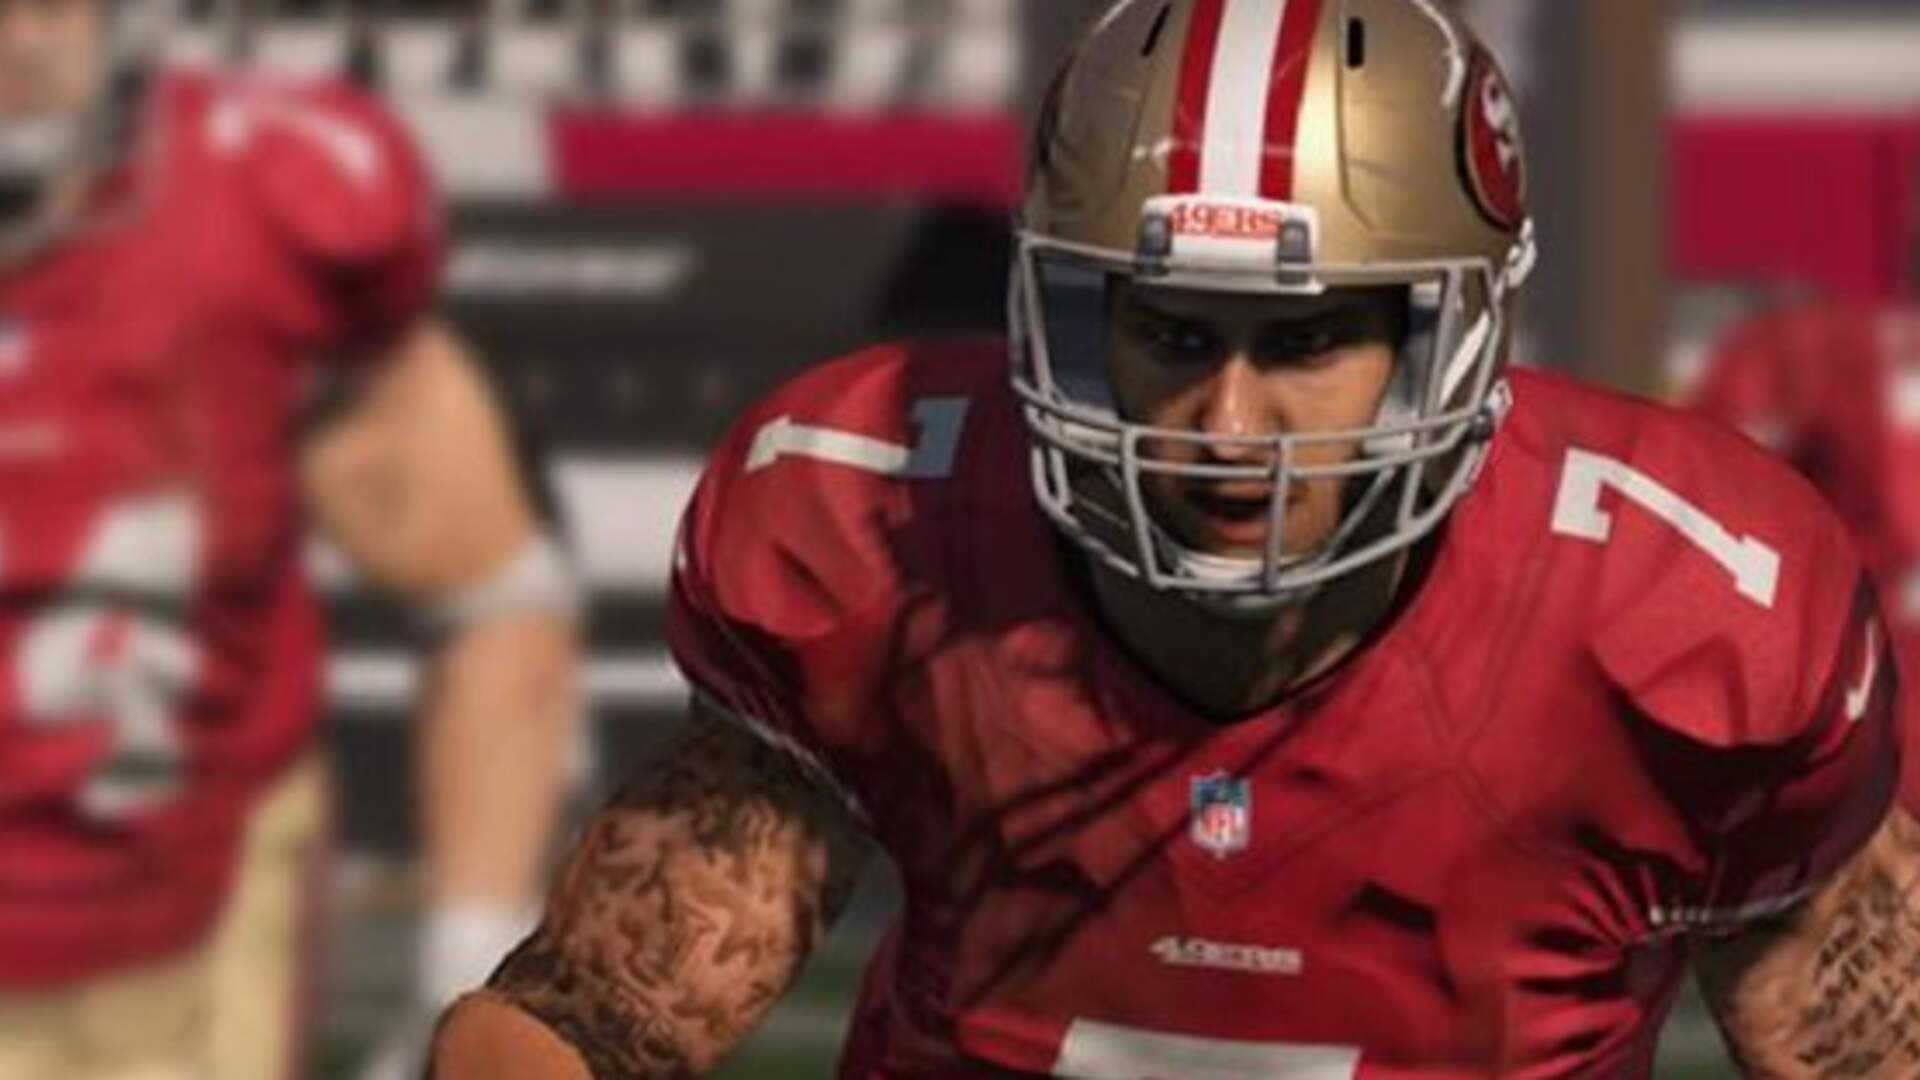 Madden 19 Cuts Reference to Anthem Kneeling QB Colin Kaepernick From Soundtrack [Update: EA Apologizes]